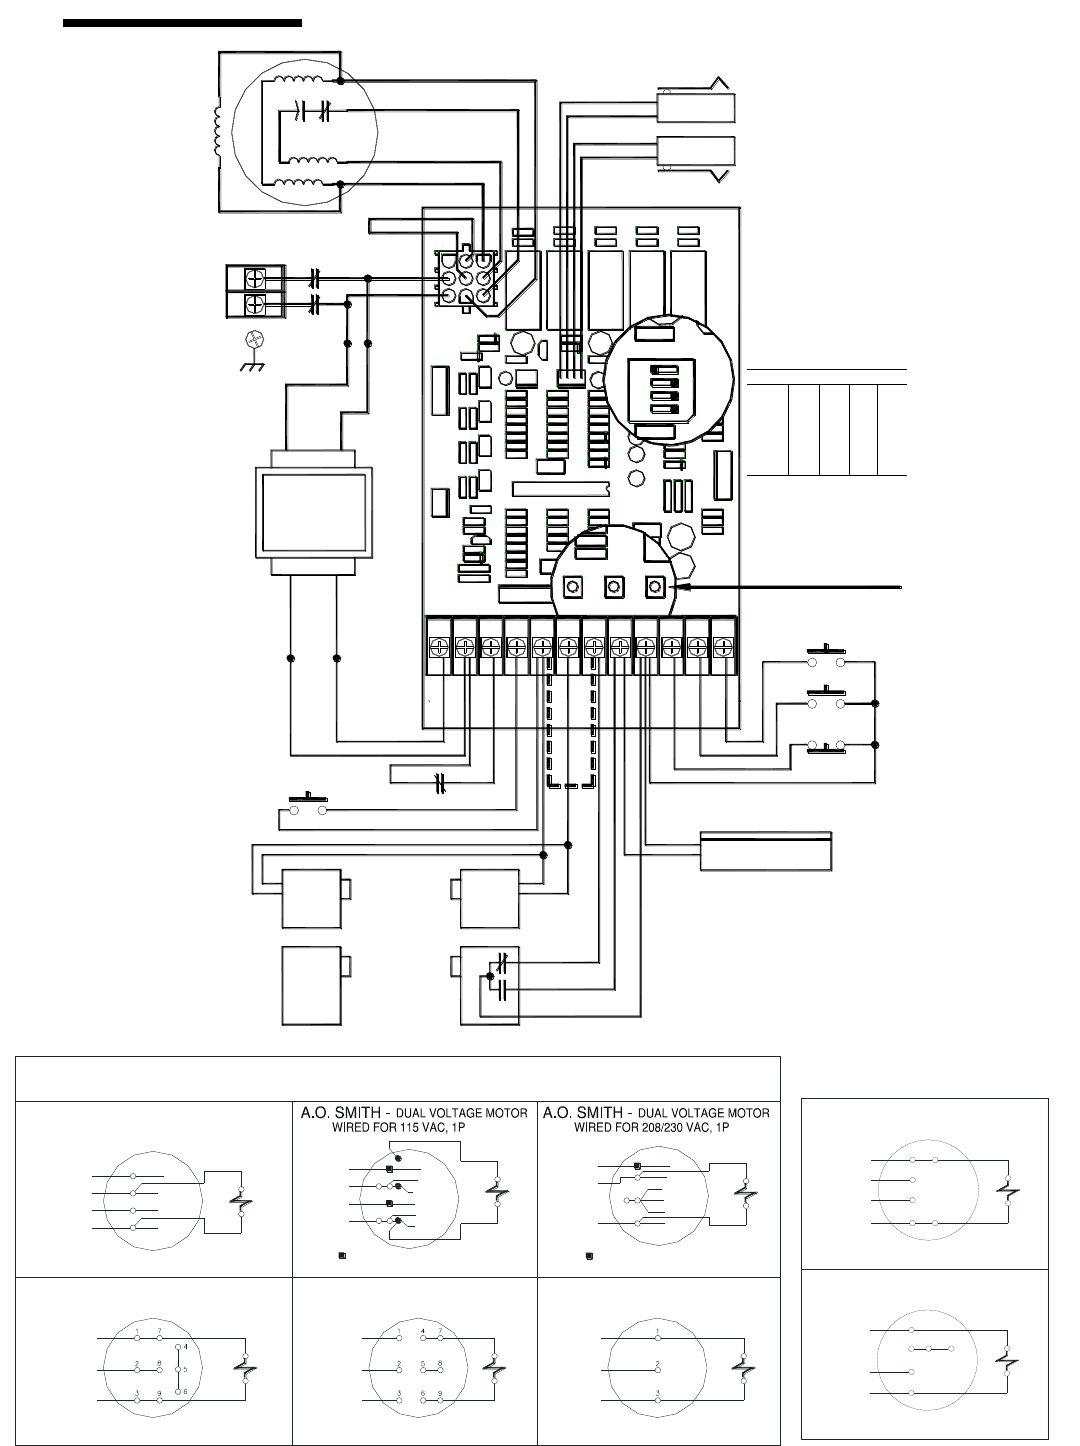 page 22 of linear garage door opener j s user guide wiring diagram schematic single phase